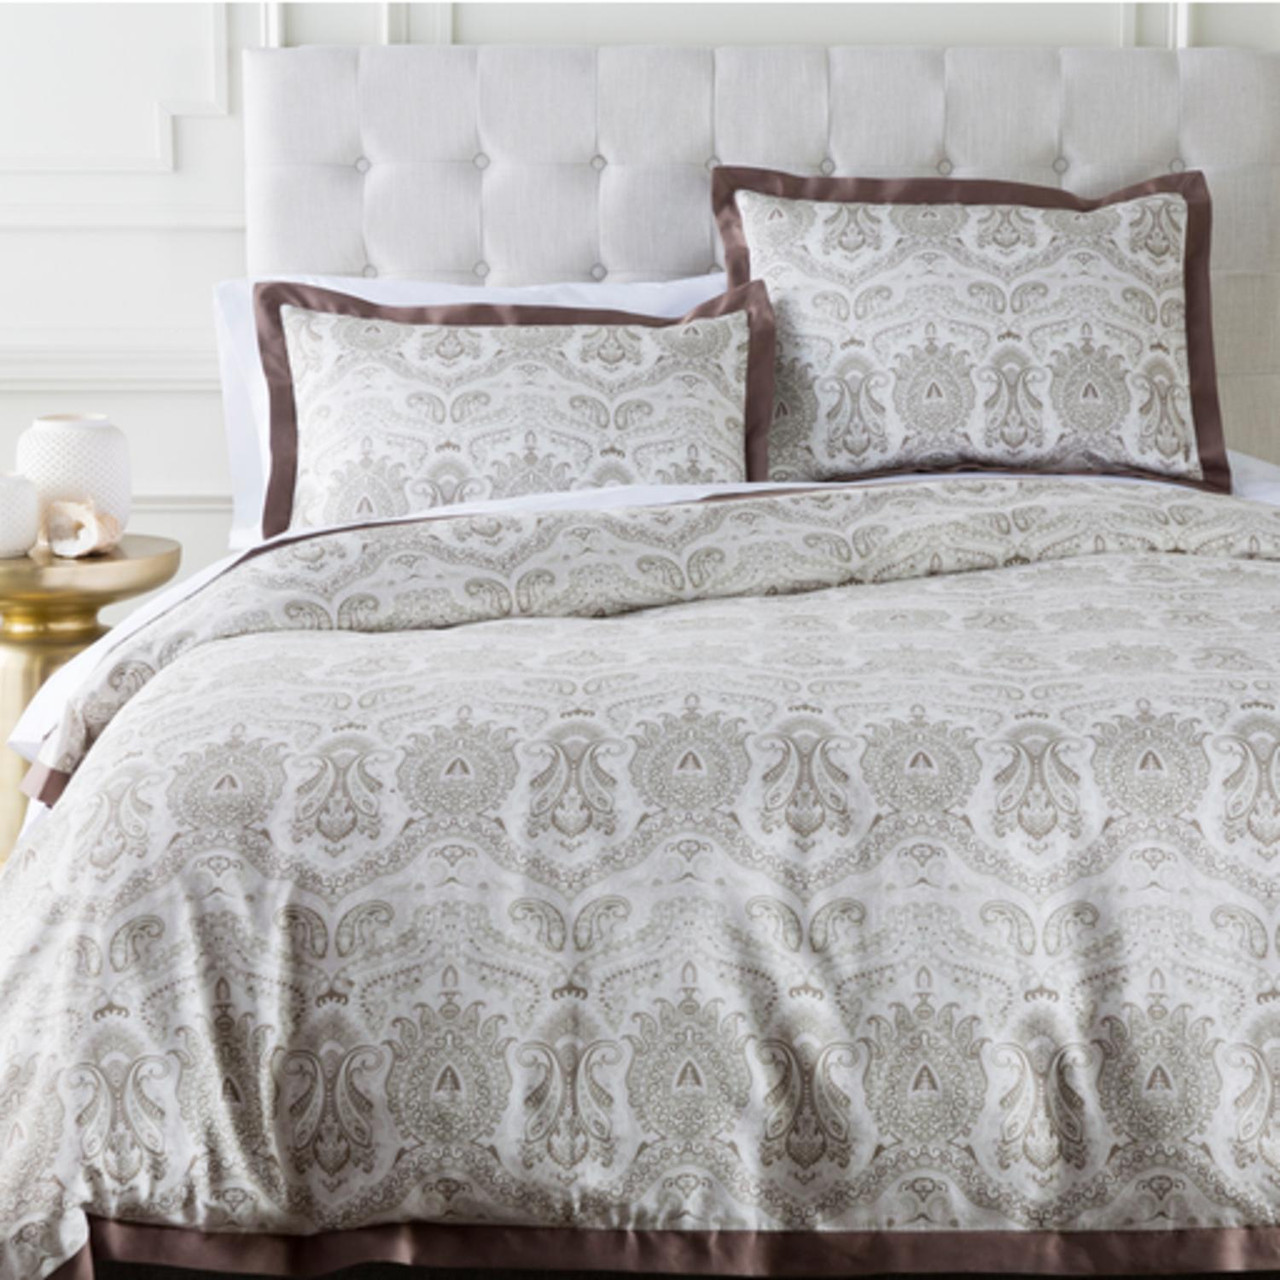 Damask Duvet Brown And Grayish White Damask Cotton King Ca King Duvet Cover 31502053